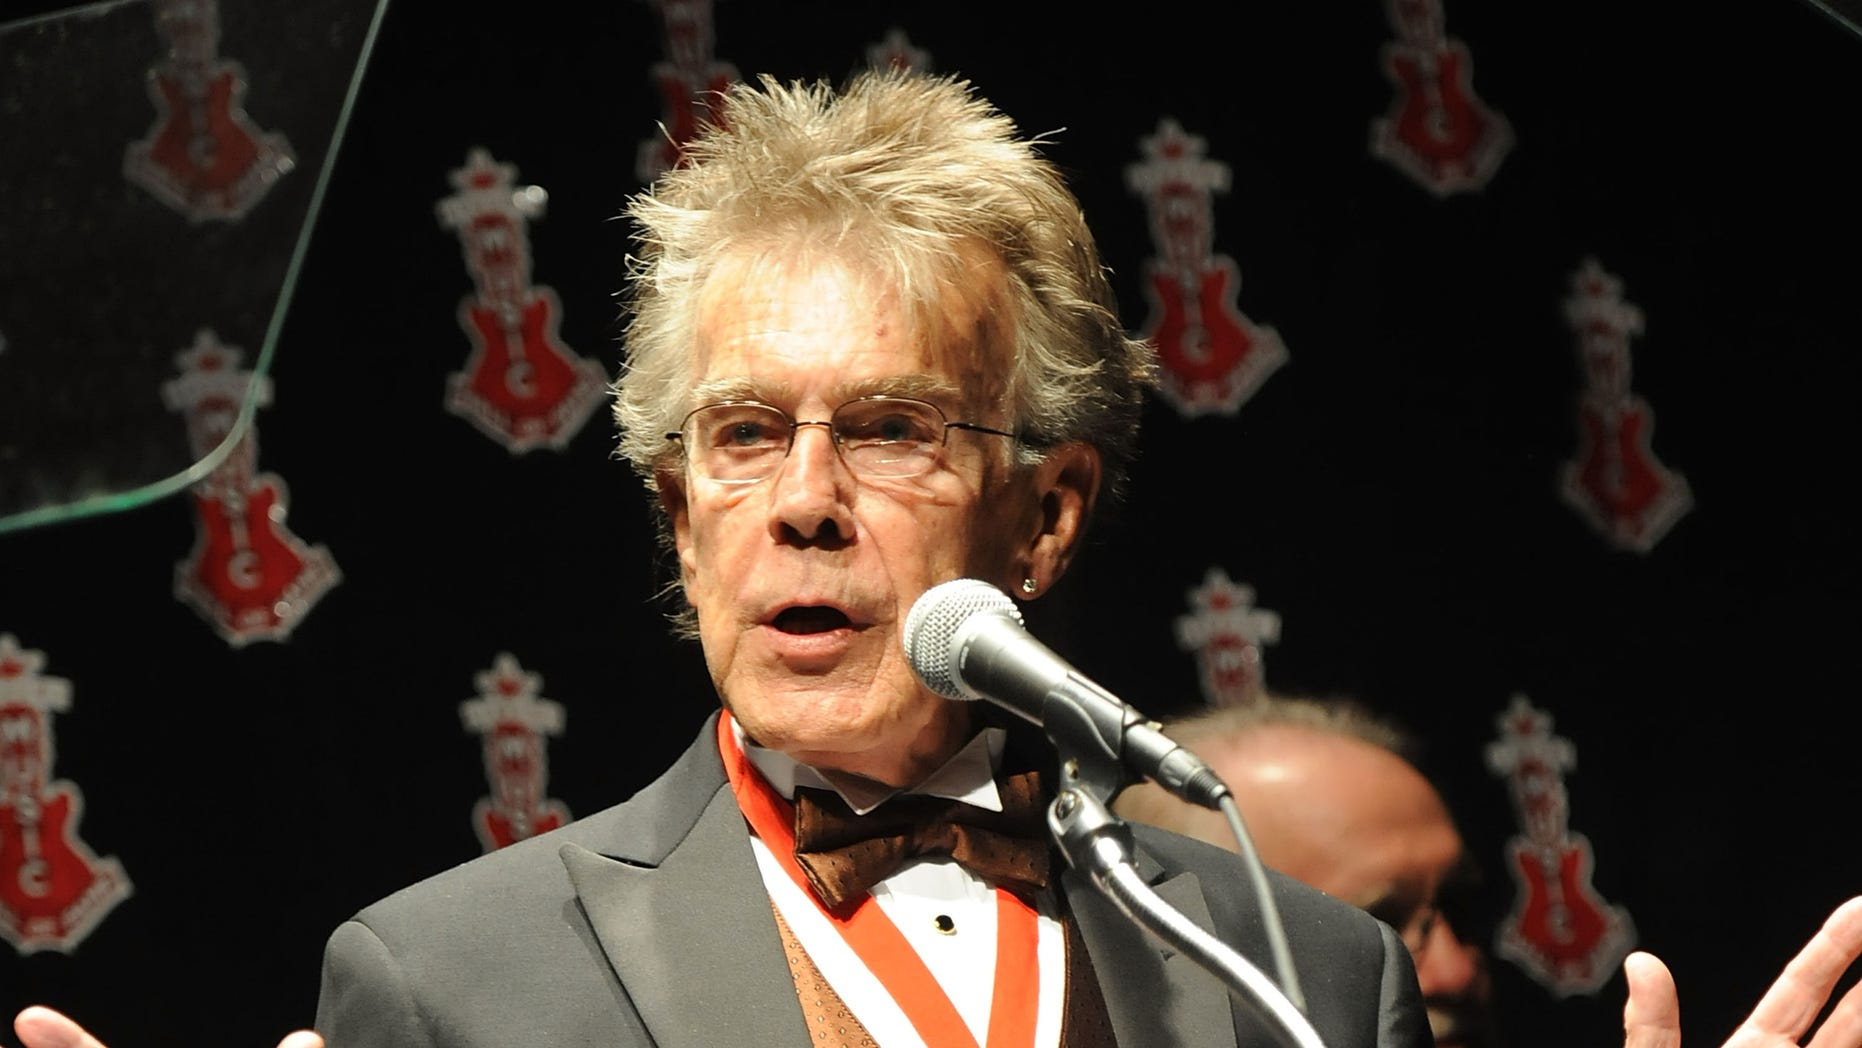 MONTGOMERY, AL - MARCH 25: Inductee Jerry Carrigan speaks at the Alabama Music Hall of Fame's 13th Induction Banquet and Awards Show at the Renaissance Hotel on March 25, 2010 in Montgomery, Alabama.